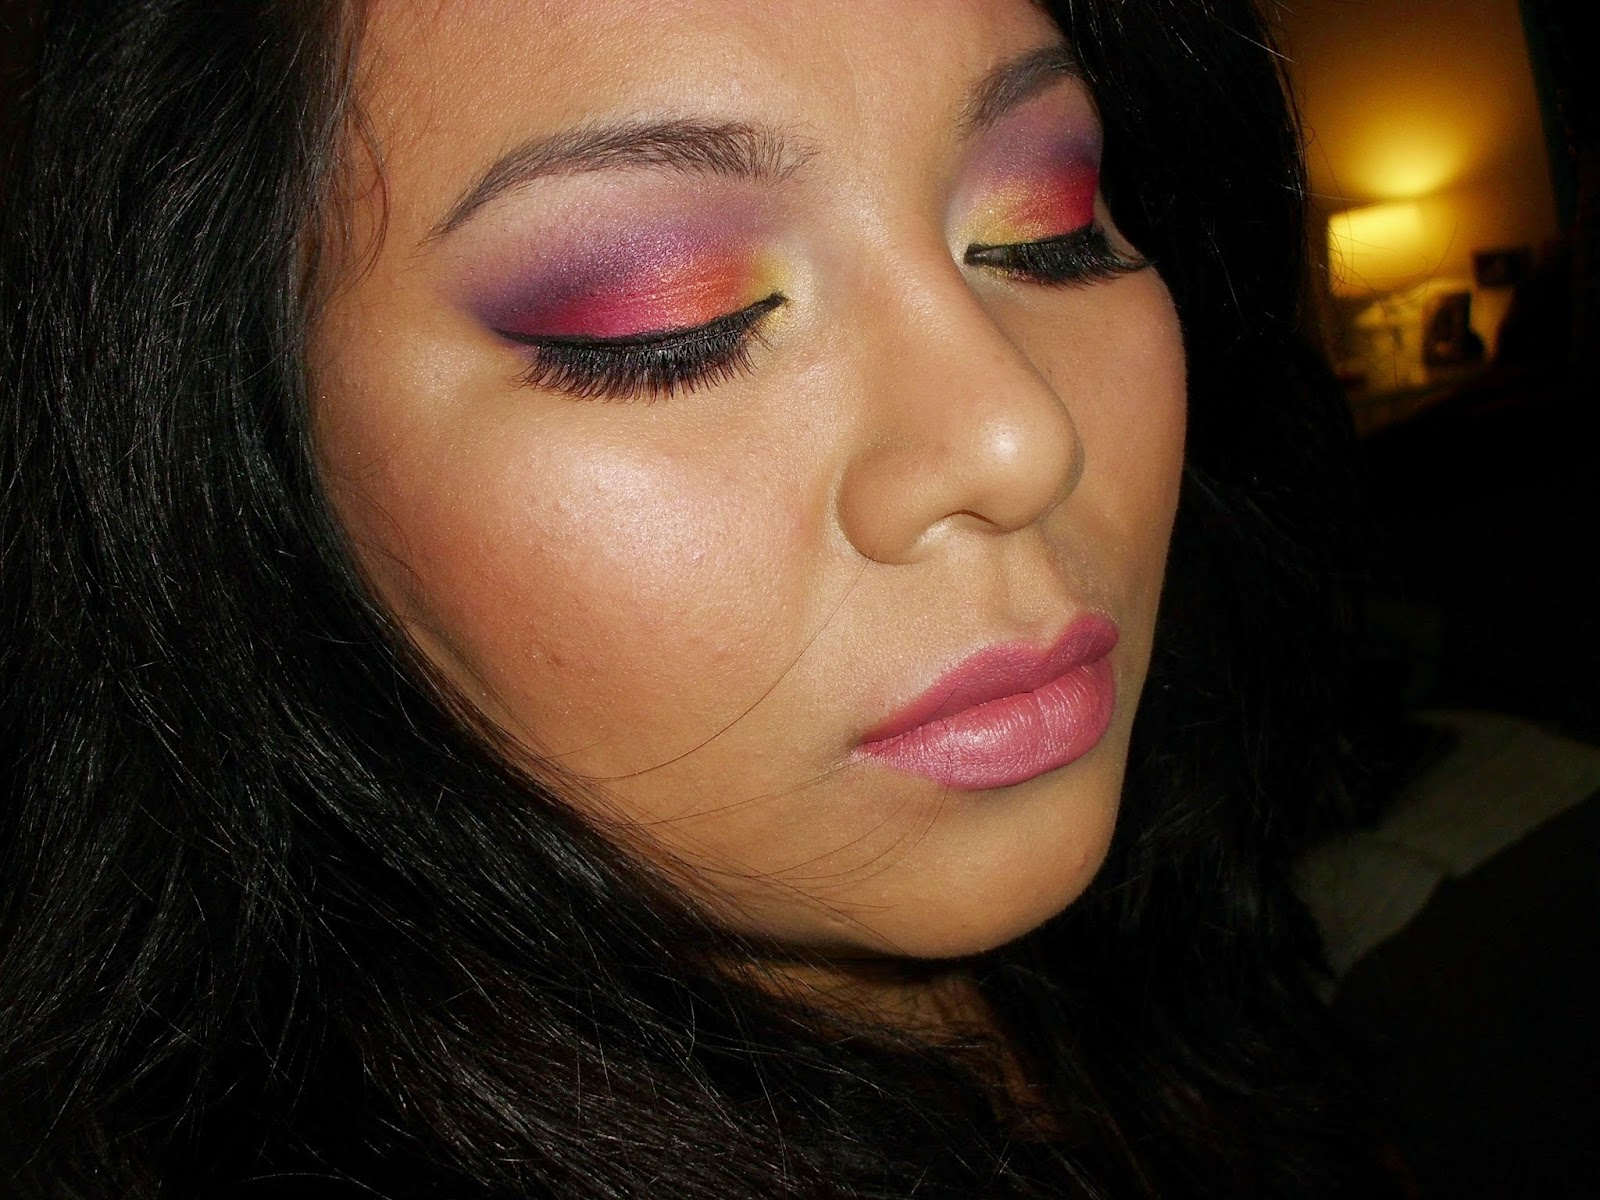 Sukkubqa, Paciugopedia, Beauty Bats, Dusk til Dawn, Good Girl Sleek, Palette Tropicalia Luminizing Satin Eye Colors Trio, Shiseido